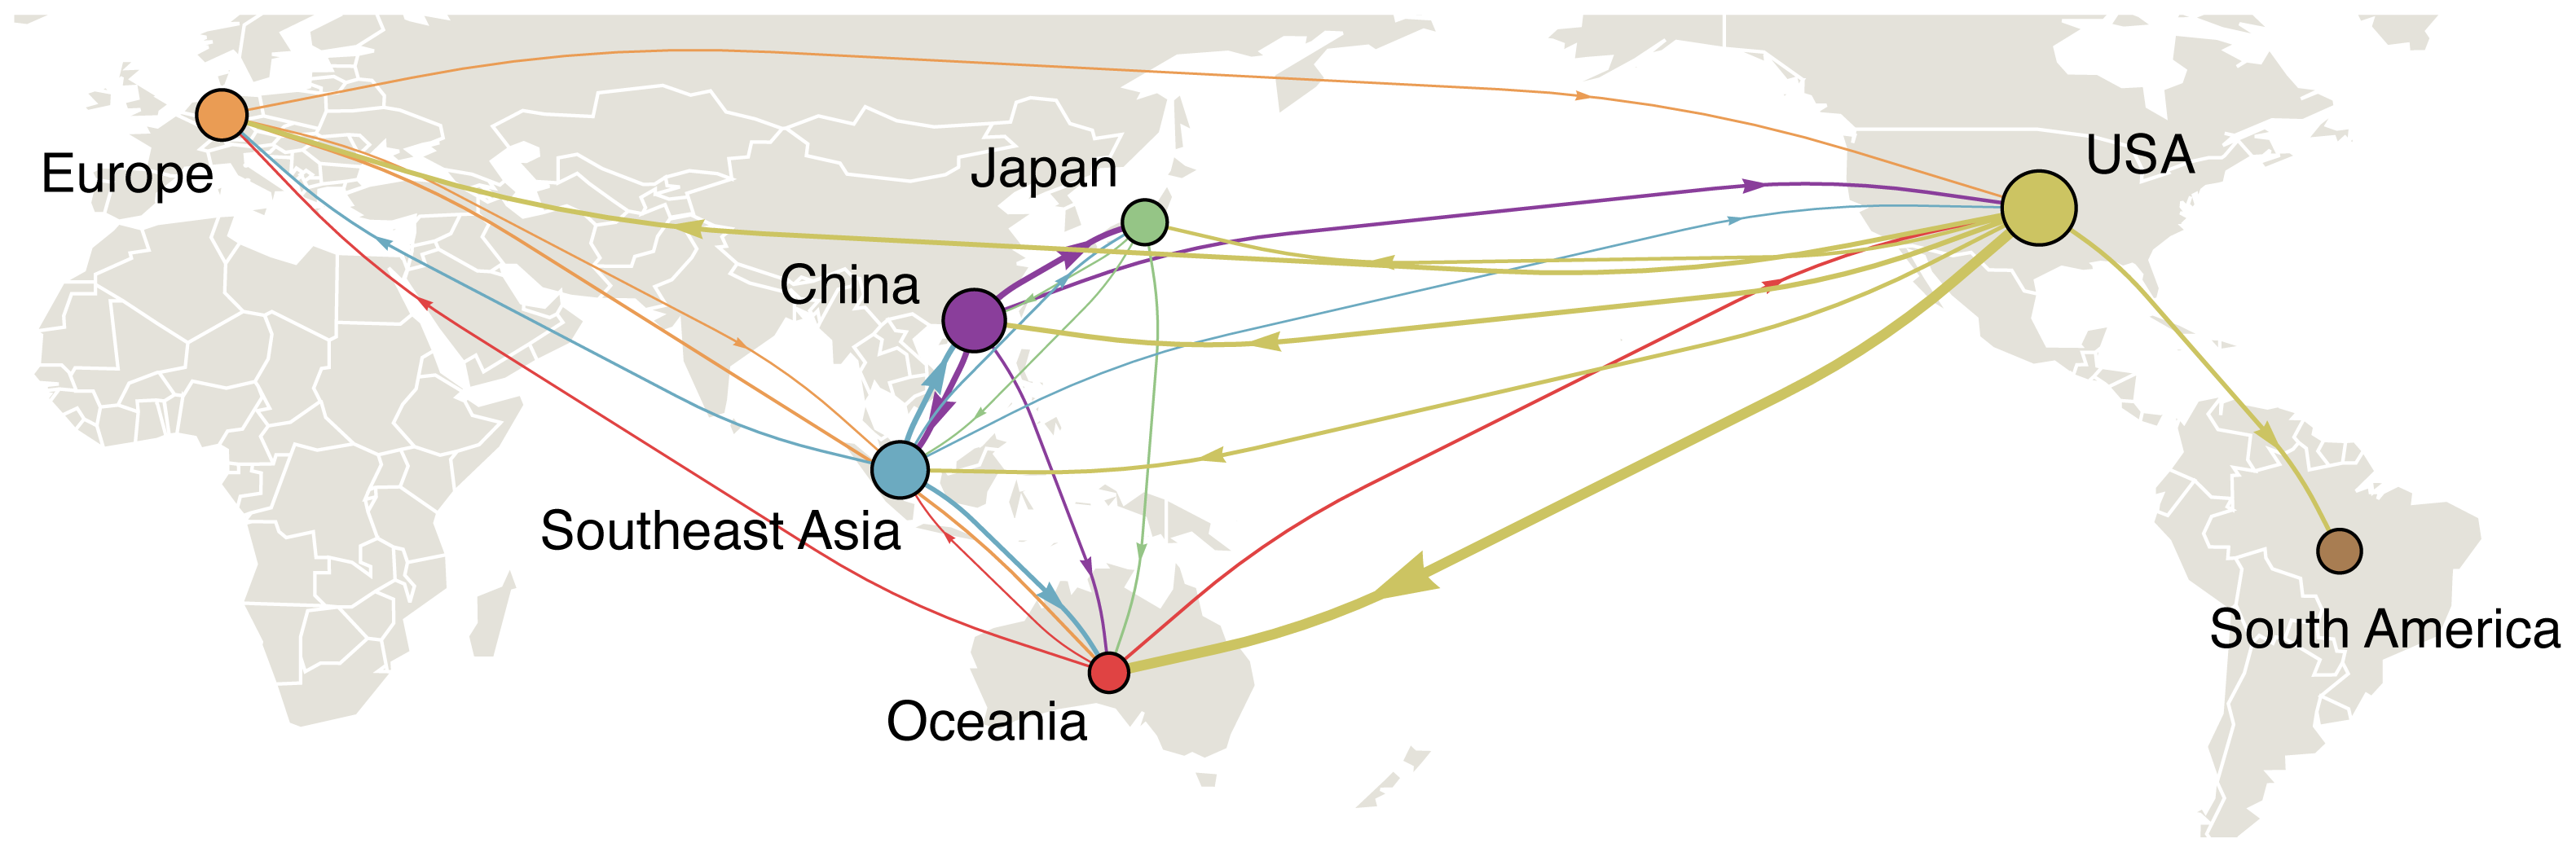 Global migration patterns of influenza A (H3N2) estimated from sequence data between 2002–2008.